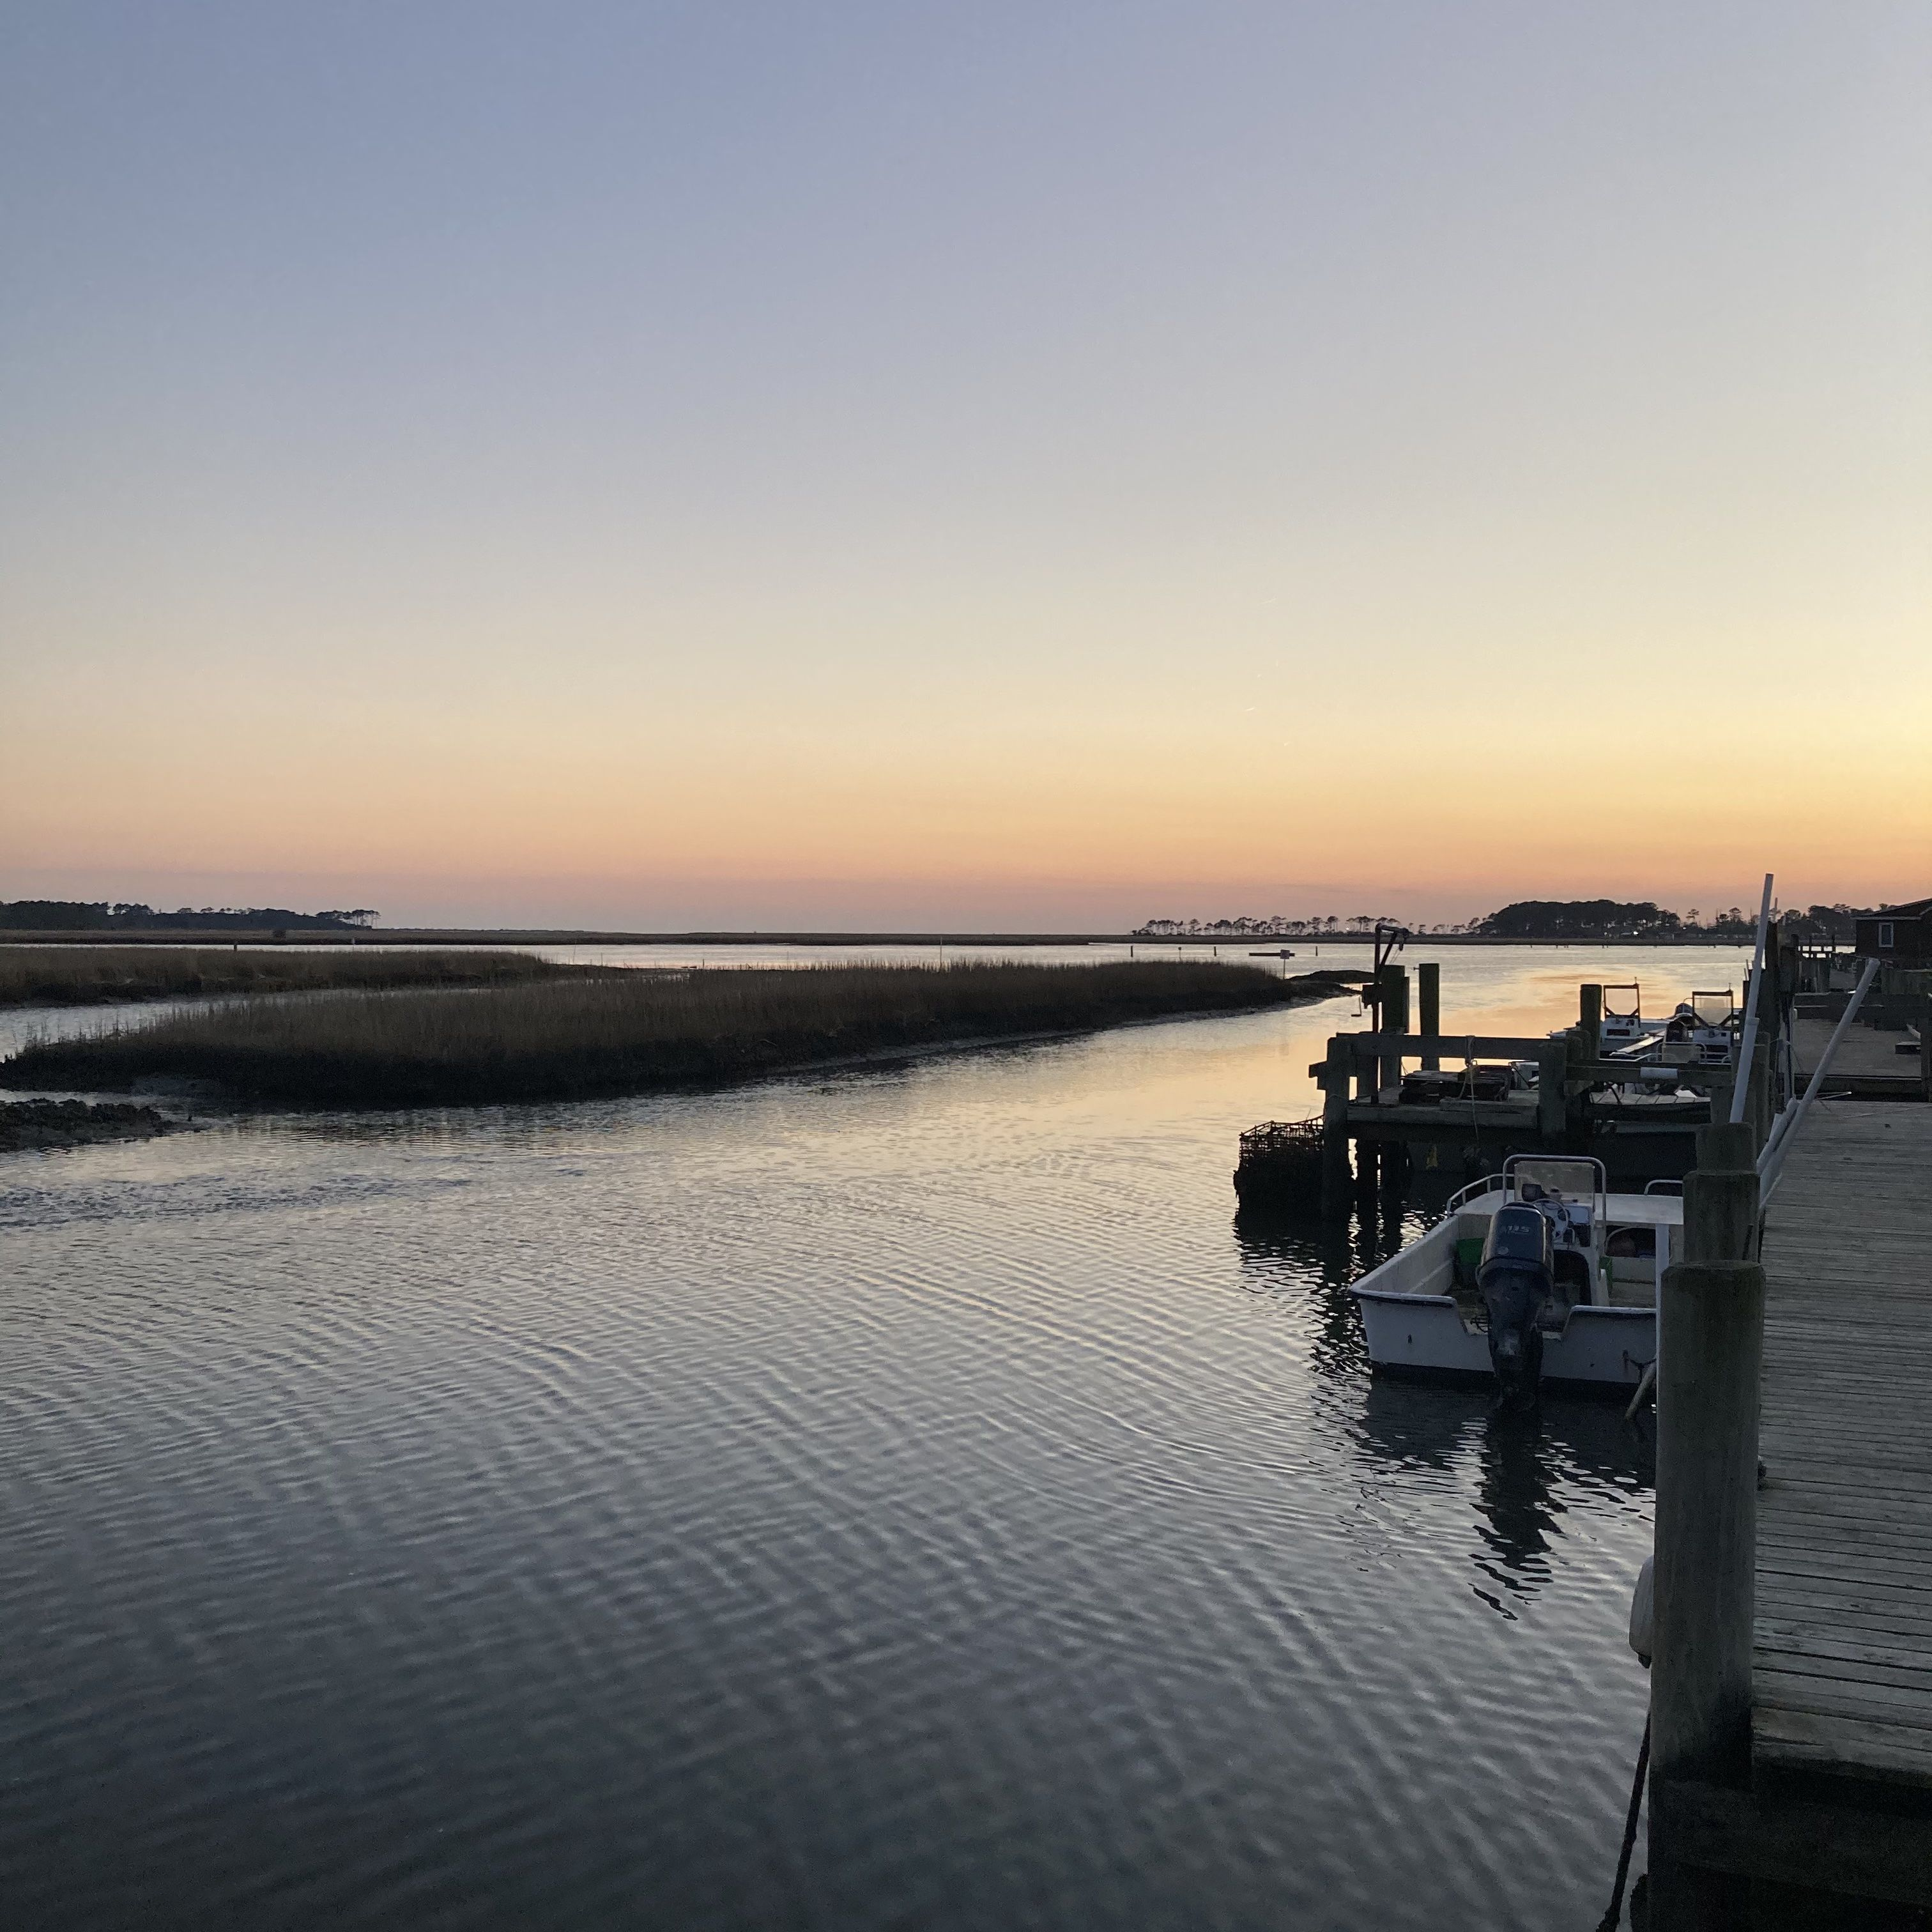 Sunset over the pier and water on an oyster farm.